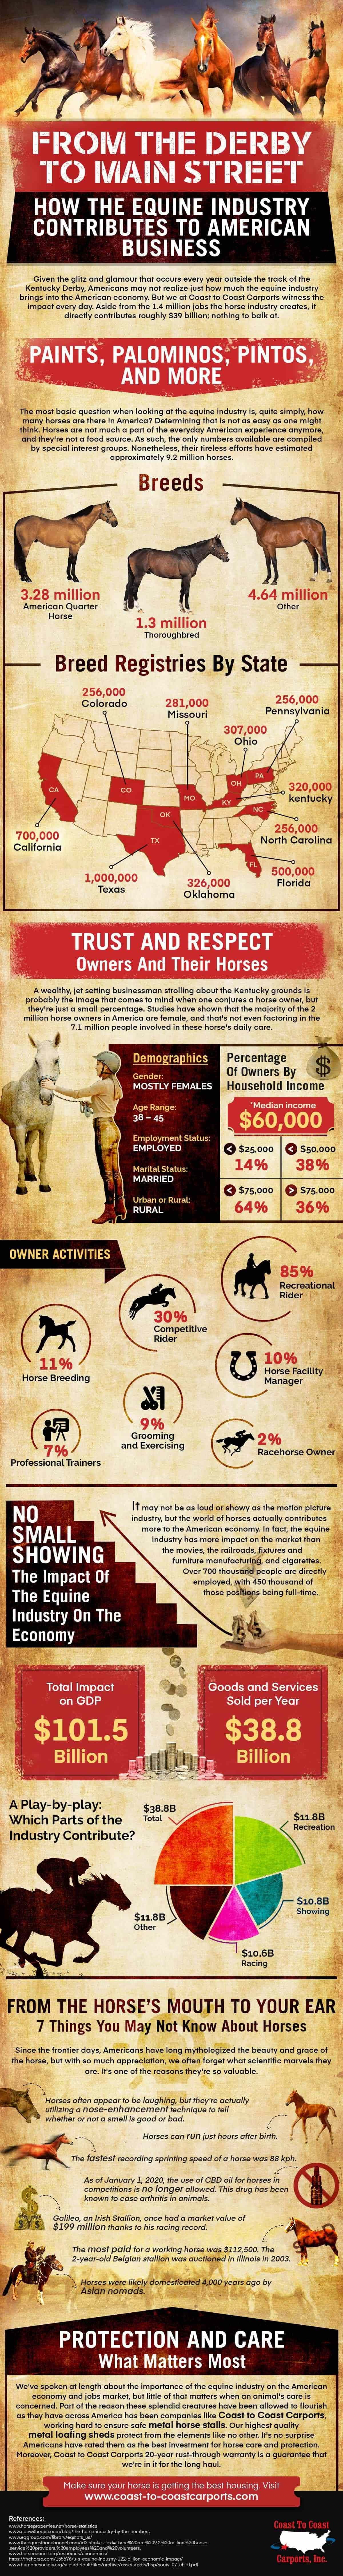 from-the-derby-to-main-street-how-the-equine-industry-contributes-to-american-business-infographic